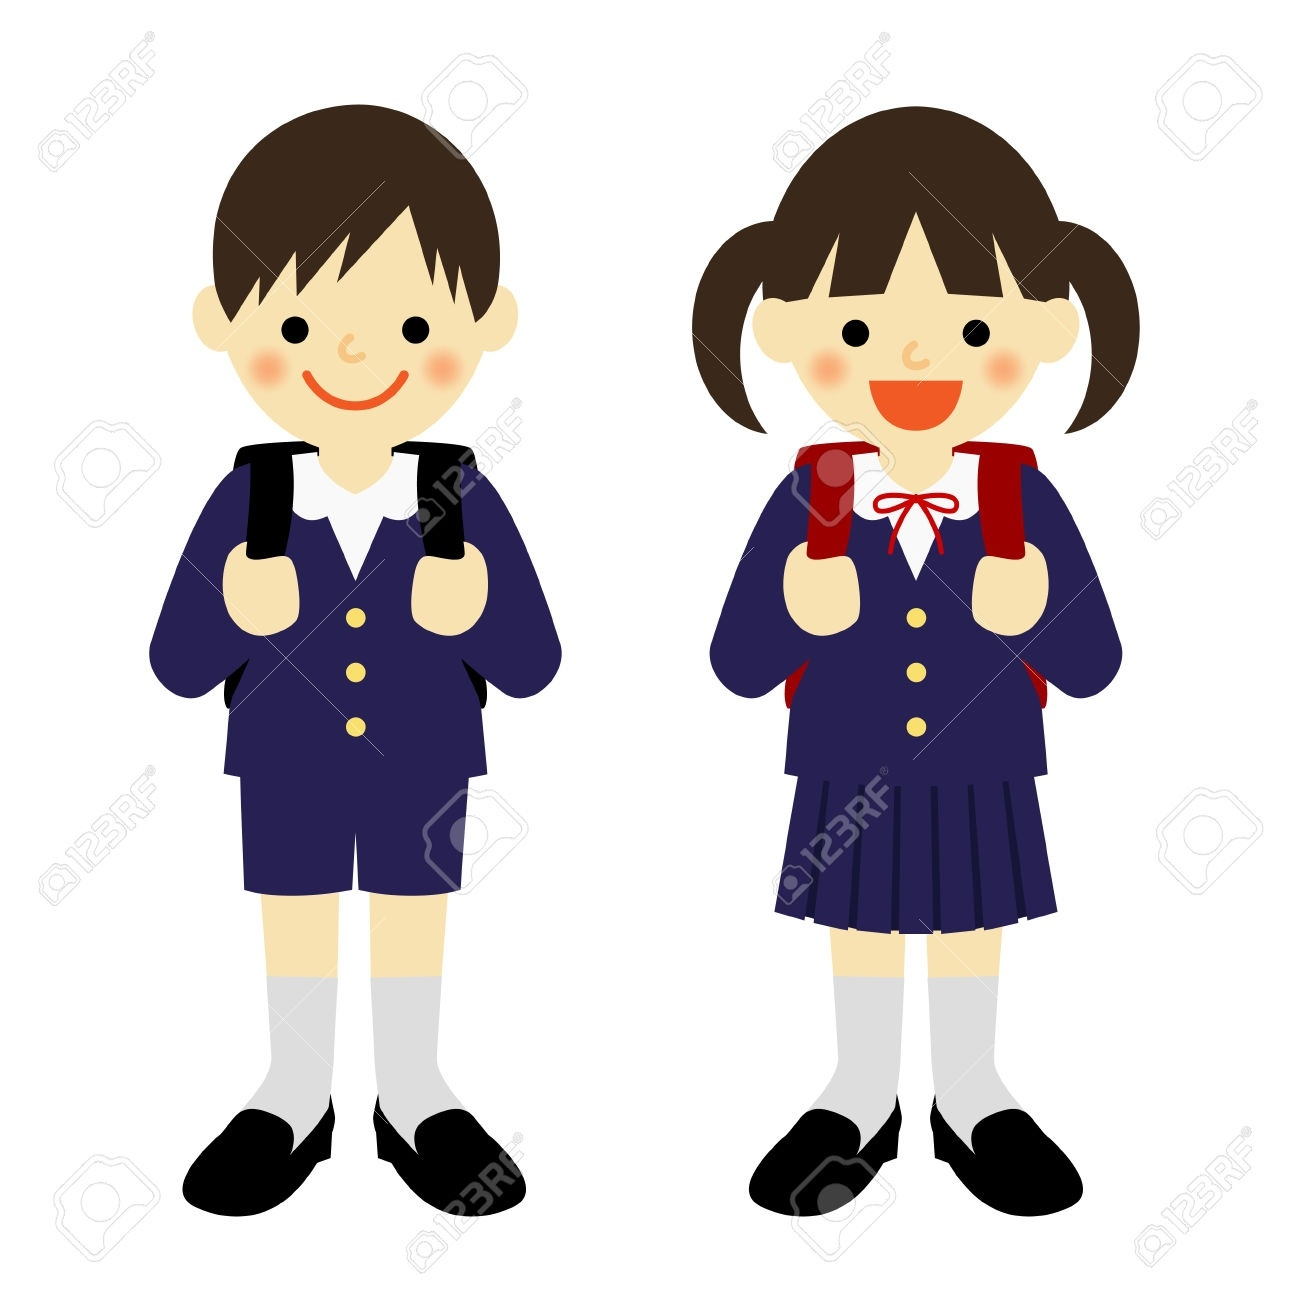 school uniform clipart at getdrawings com free for personal use rh getdrawings com school uniforms clip art school uniform clipart free